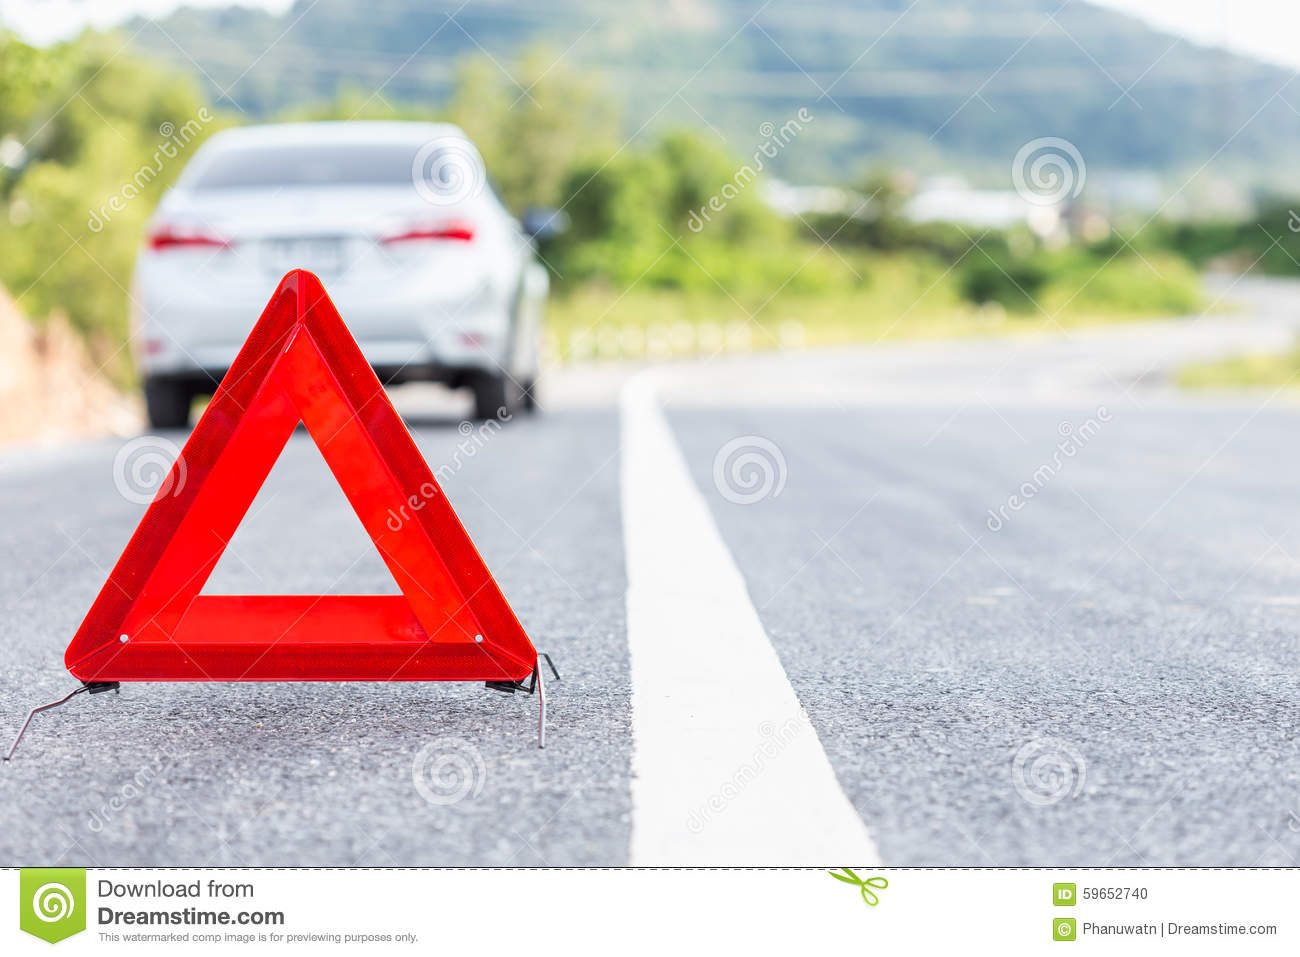 Red emergency stop sign and broken silver car